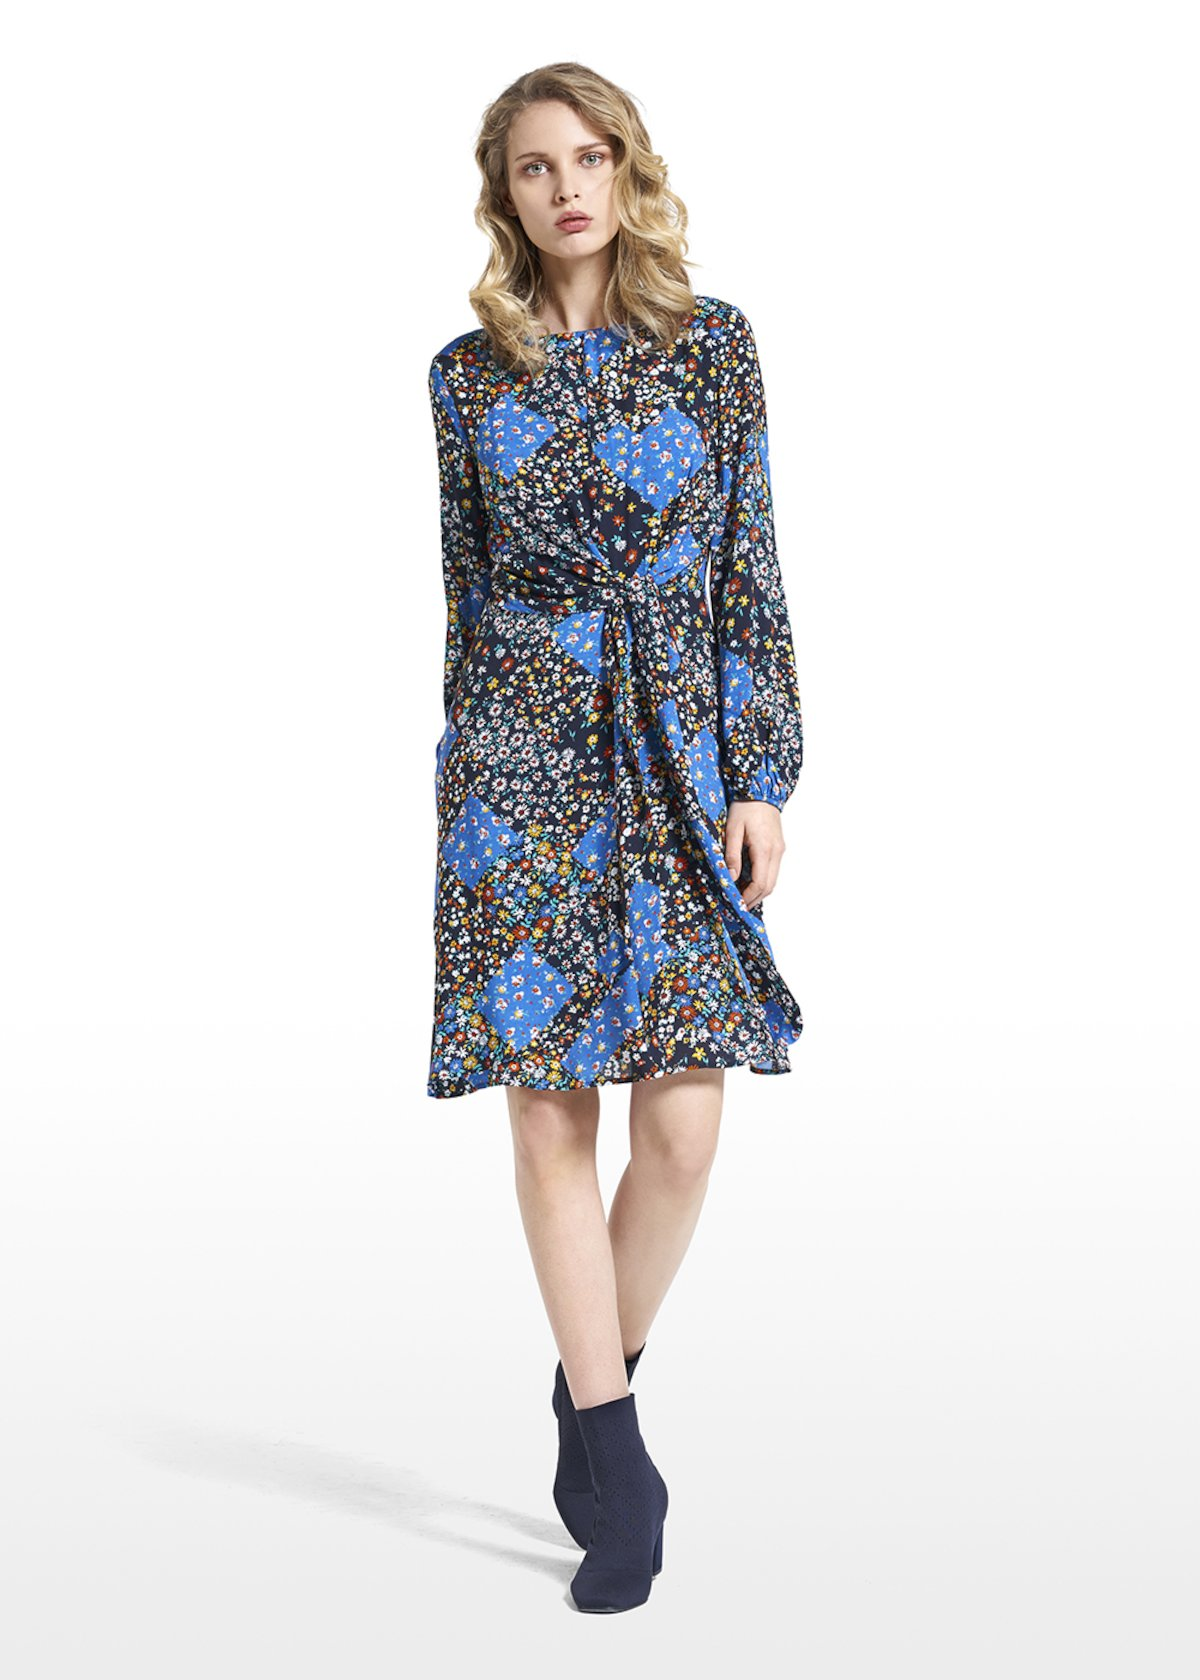 Dress Adamo patterned covent garden with dro-shaped neckline - Blue / Avion Fantasia - Woman - Category image